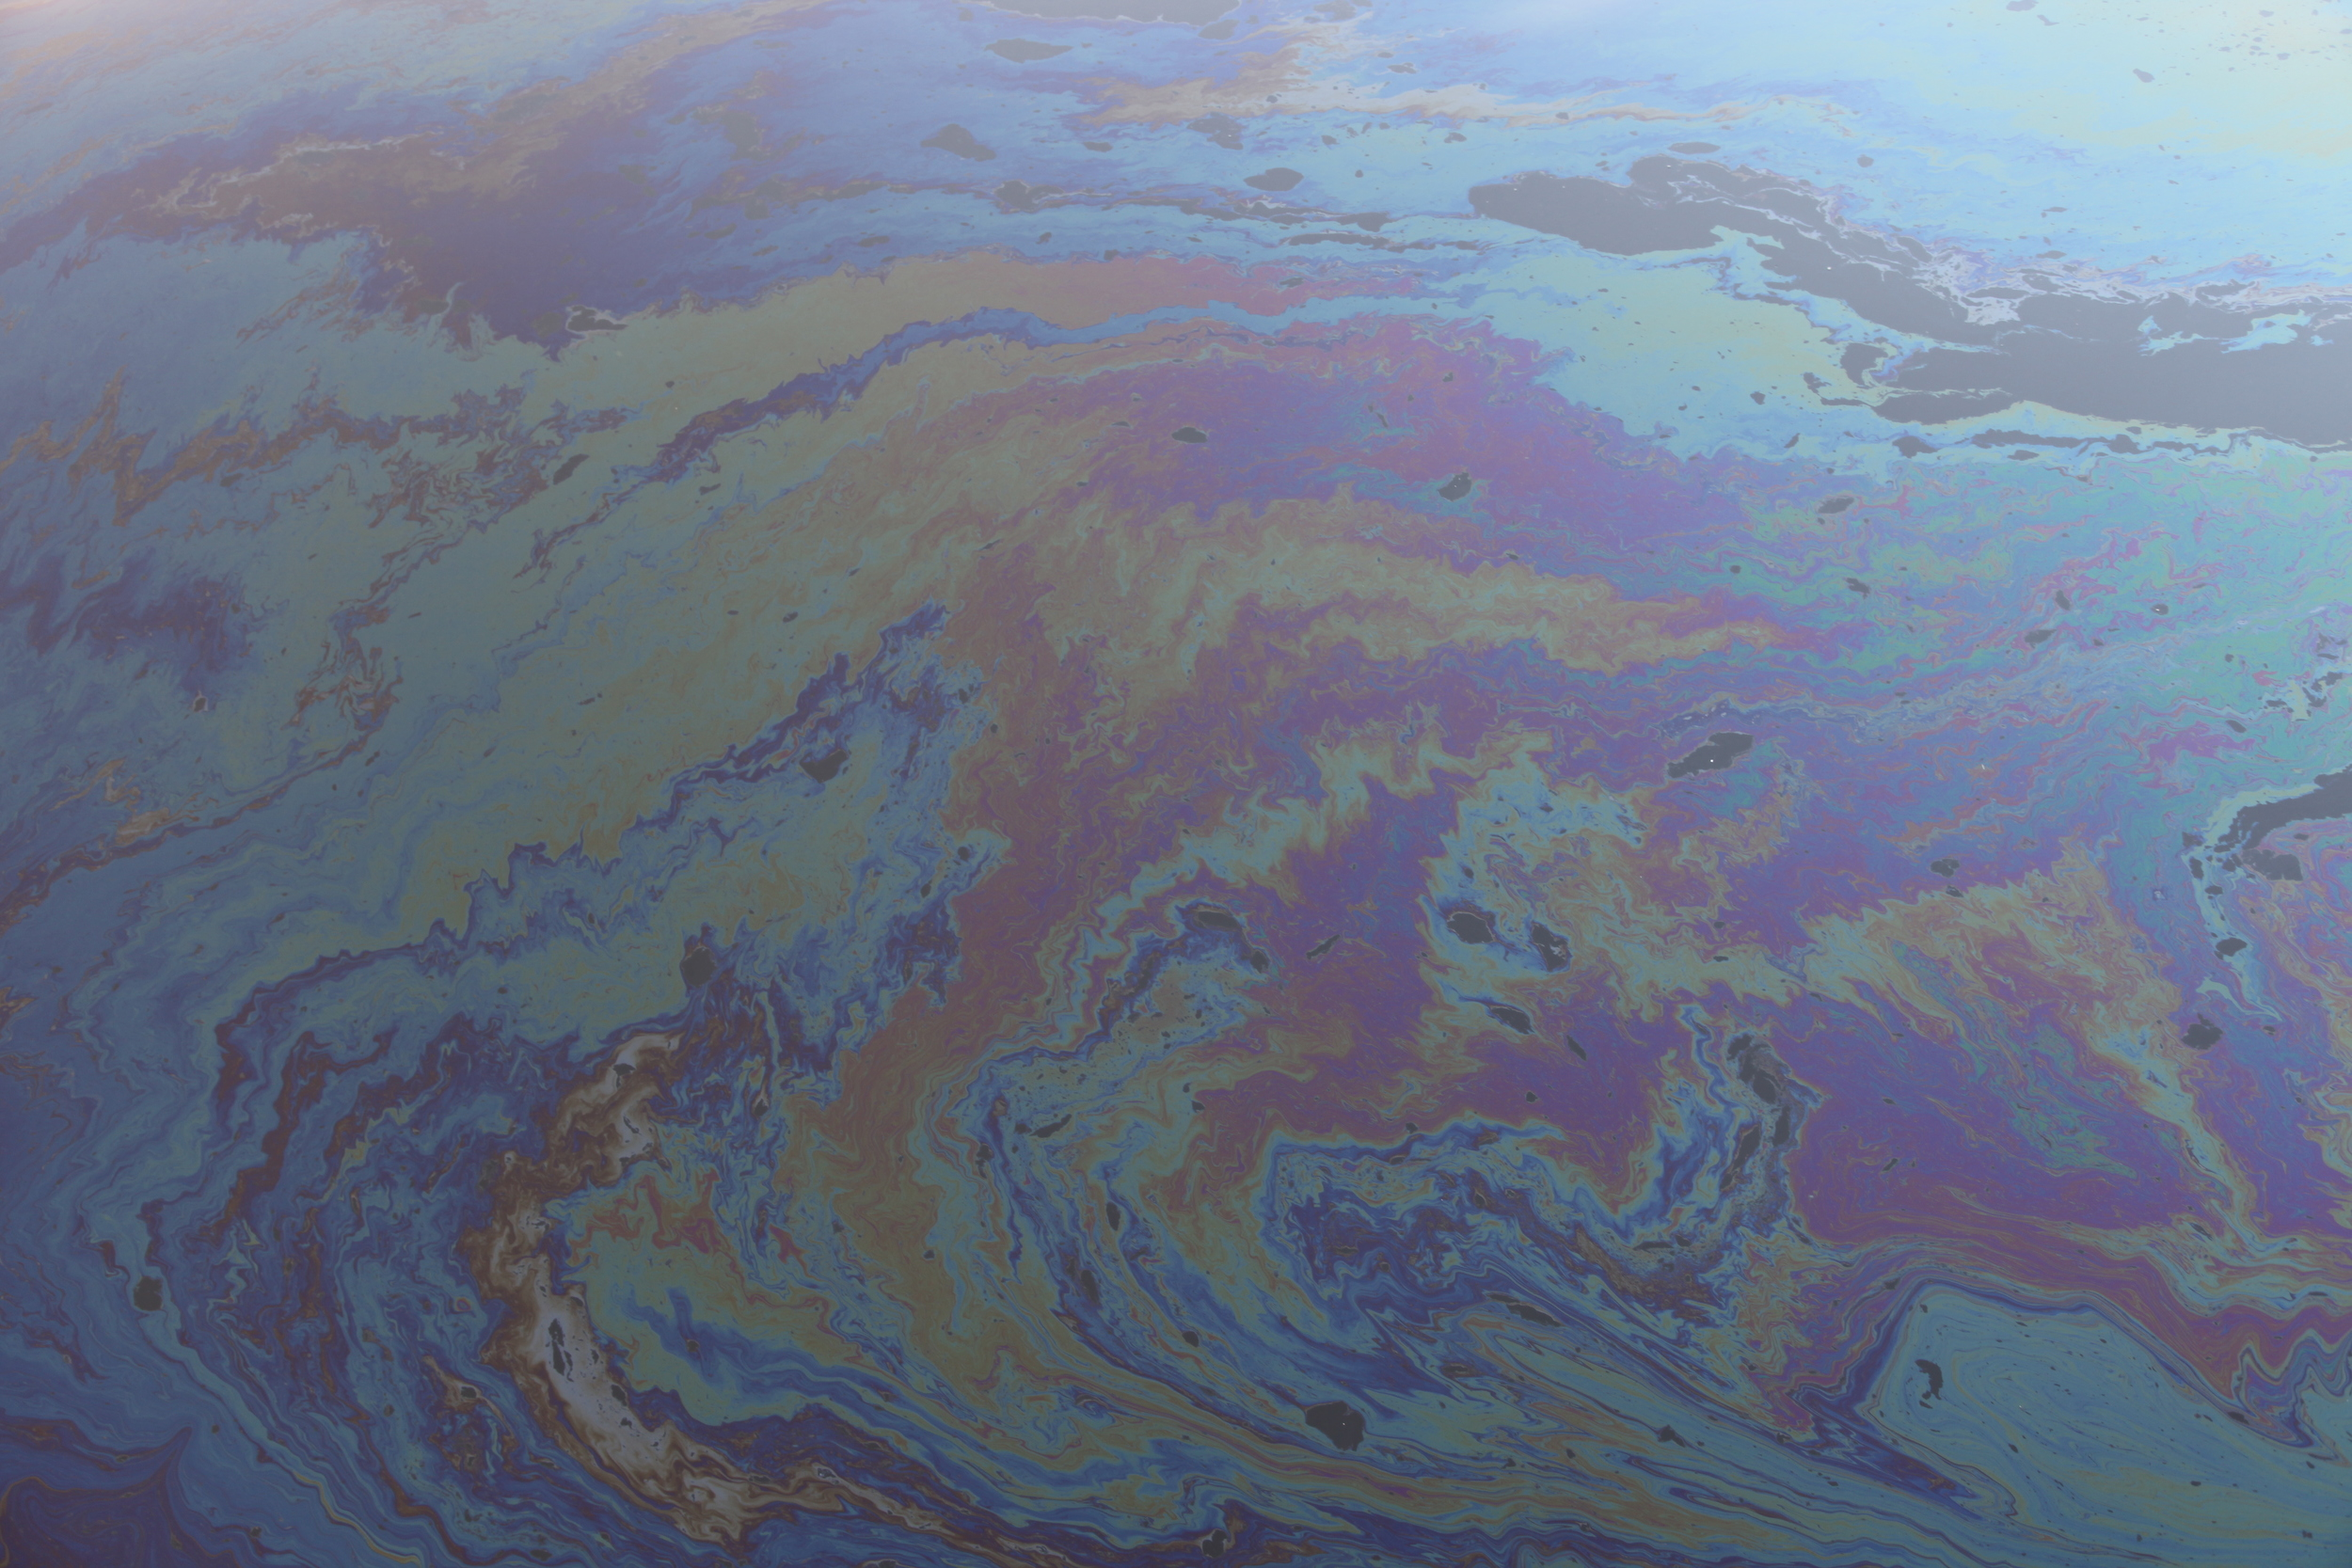 Rainbow Sheen From Spilled Oil on Surface of Newtown Creek, December 2015.